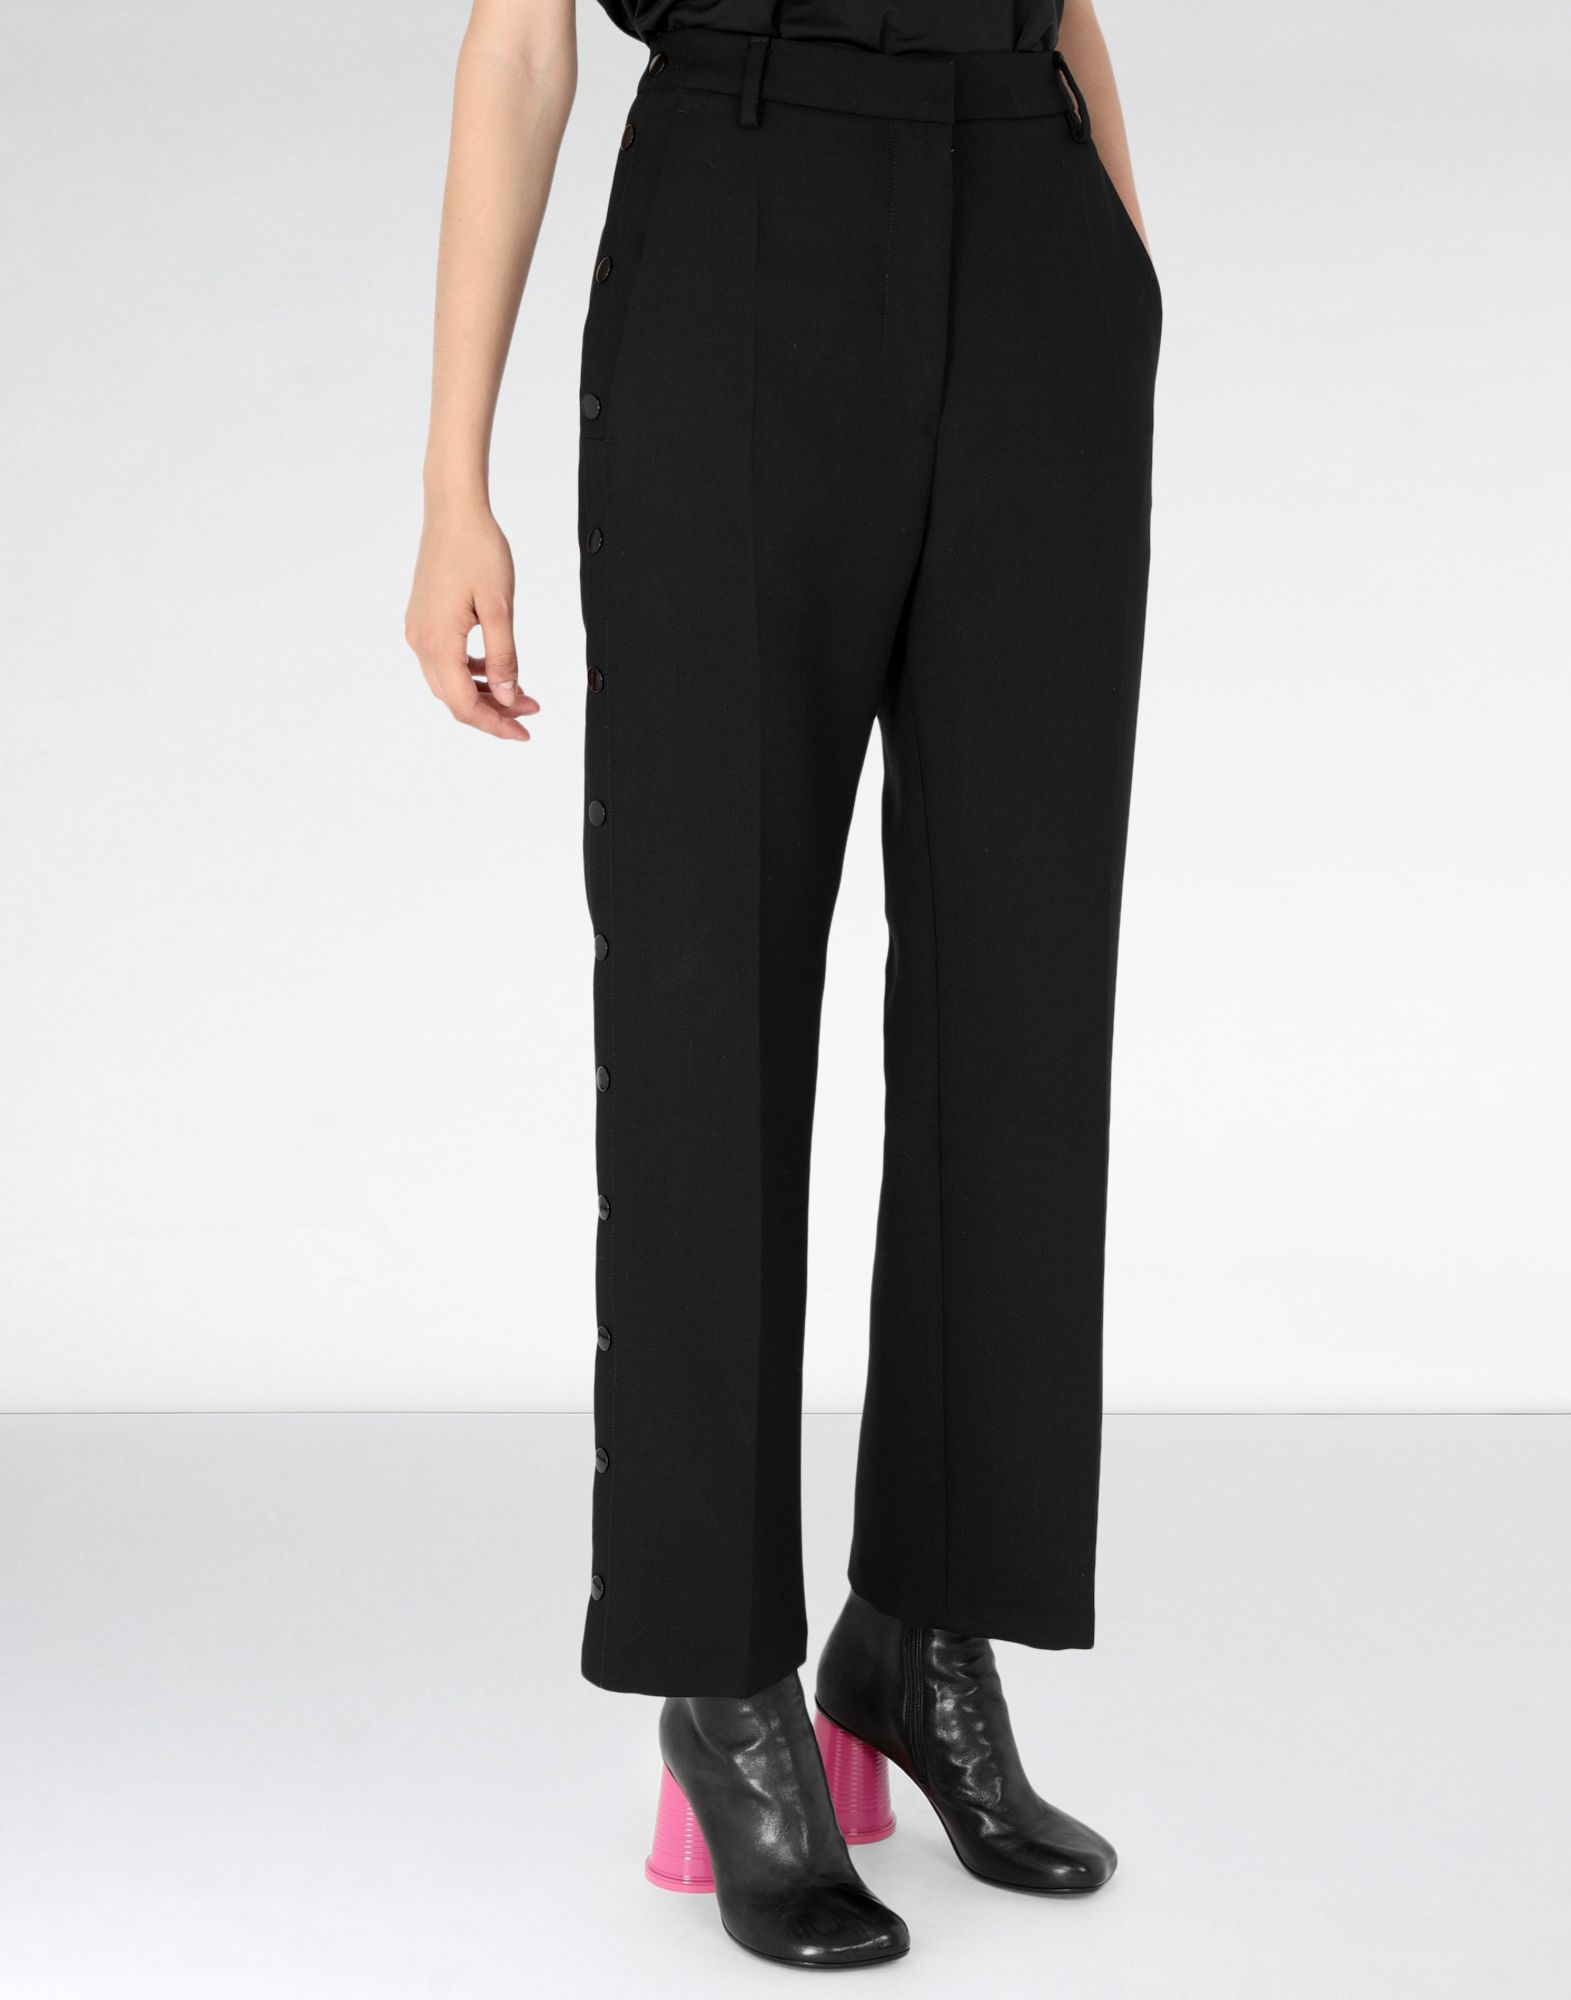 MM6 MAISON MARGIELA High waisted trousers with side buttons Casual pants Woman f